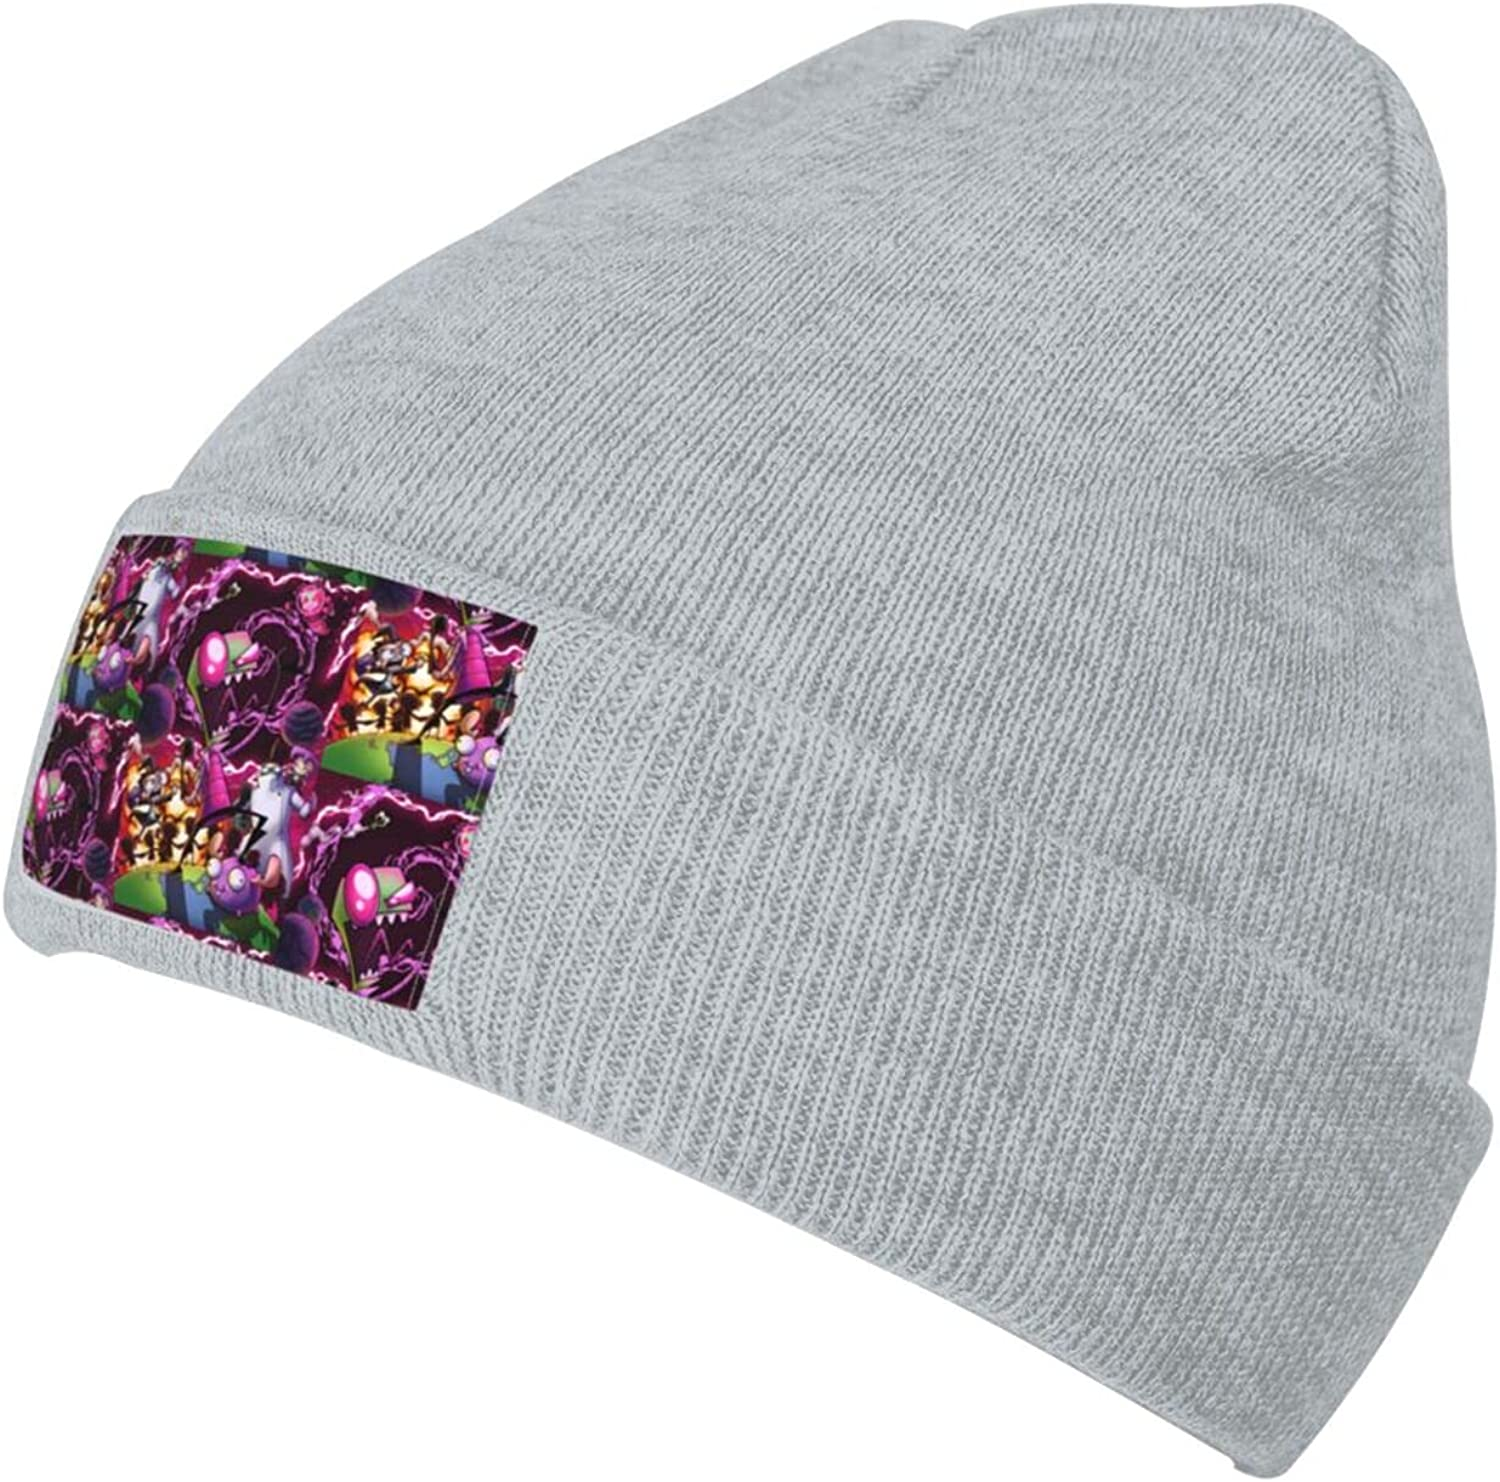 Ruporch Invader-Zim Super beauty product restock quality top Knit Hat Beanie Adult fo Cap Unisex 40% OFF Cheap Sale Hats